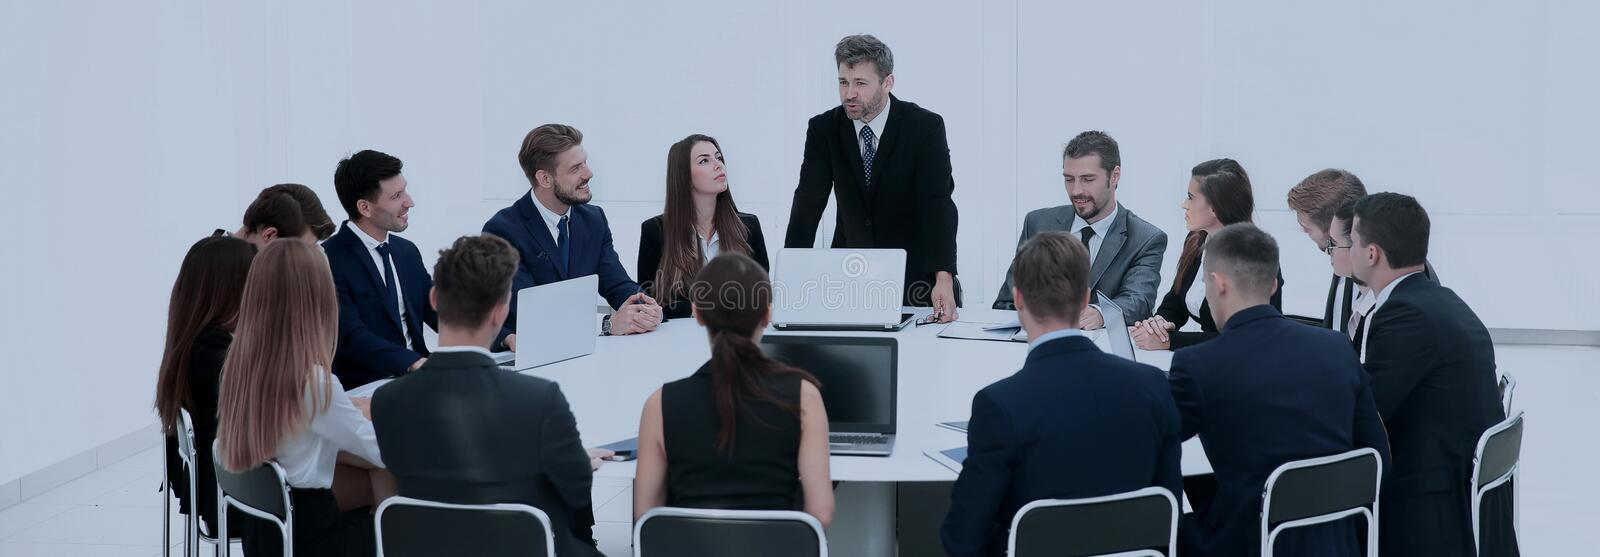 Indoor business conference for managers. royalty free stock photo